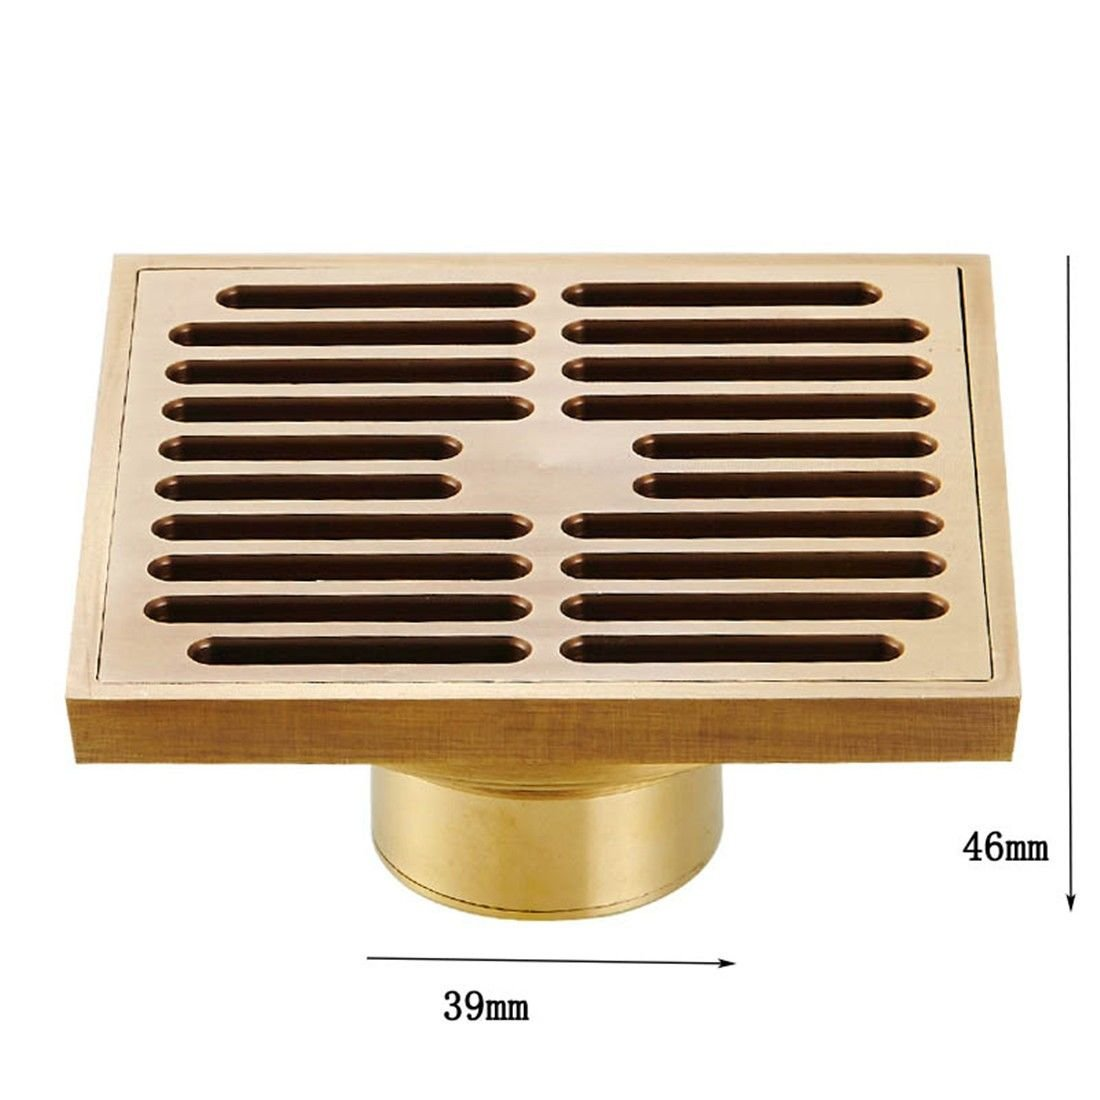 Copper odor-proof floor drain bathroom Washing machine tee-European antique underground water track pest control drainage, T Type